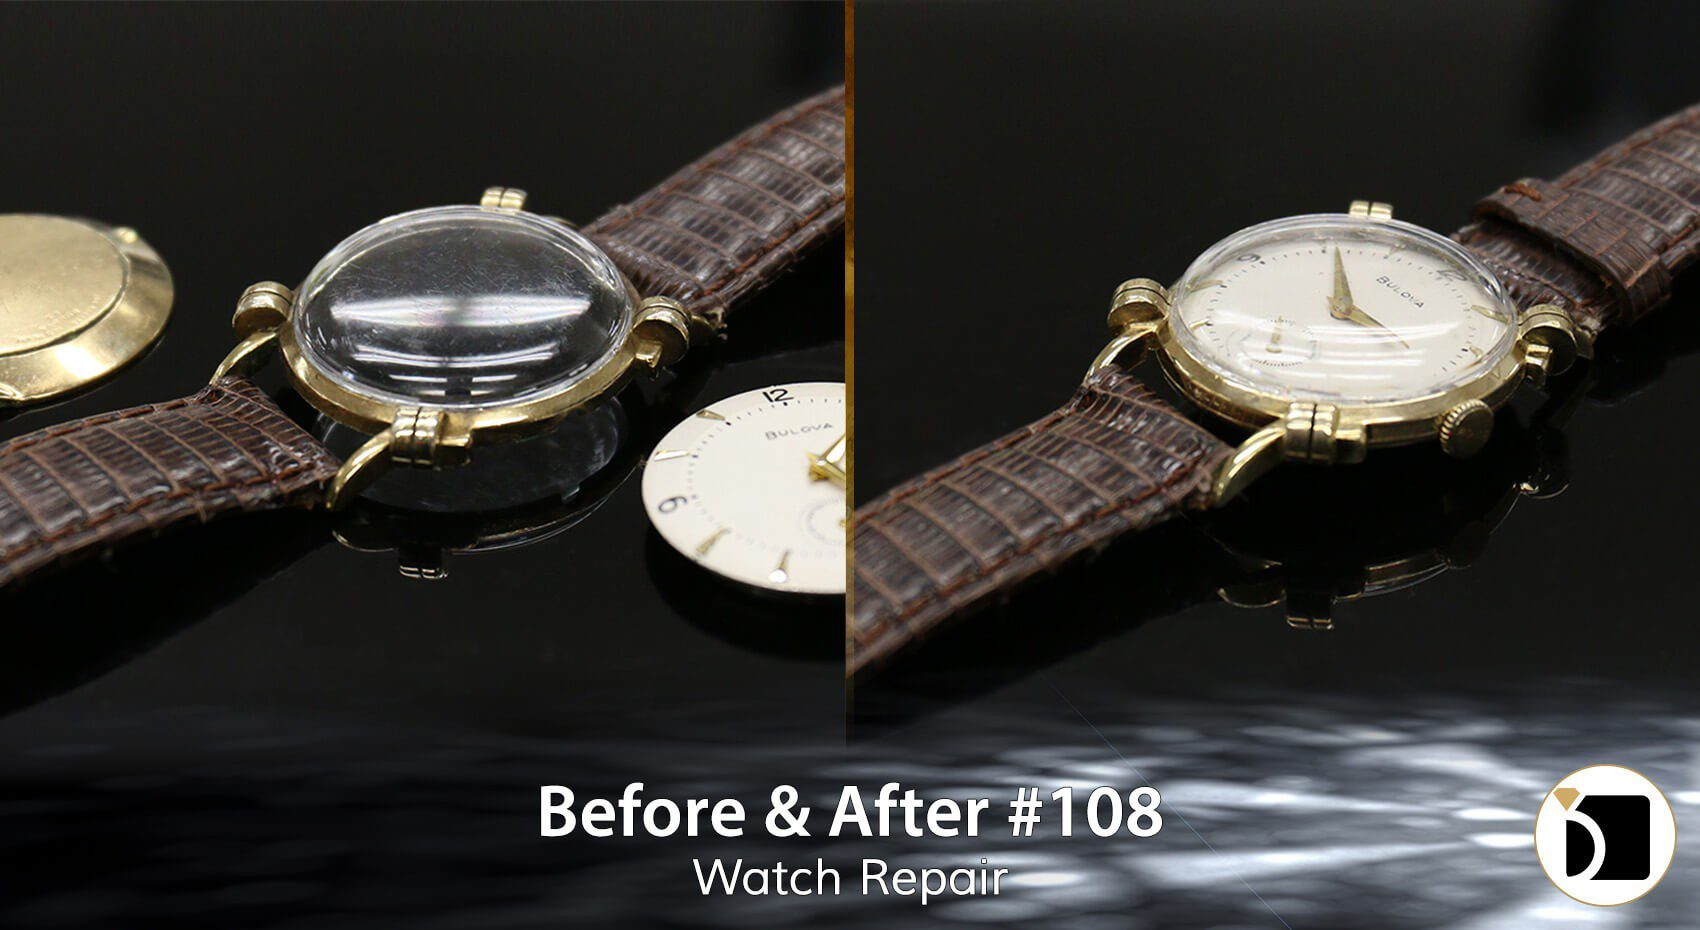 Before & After #108